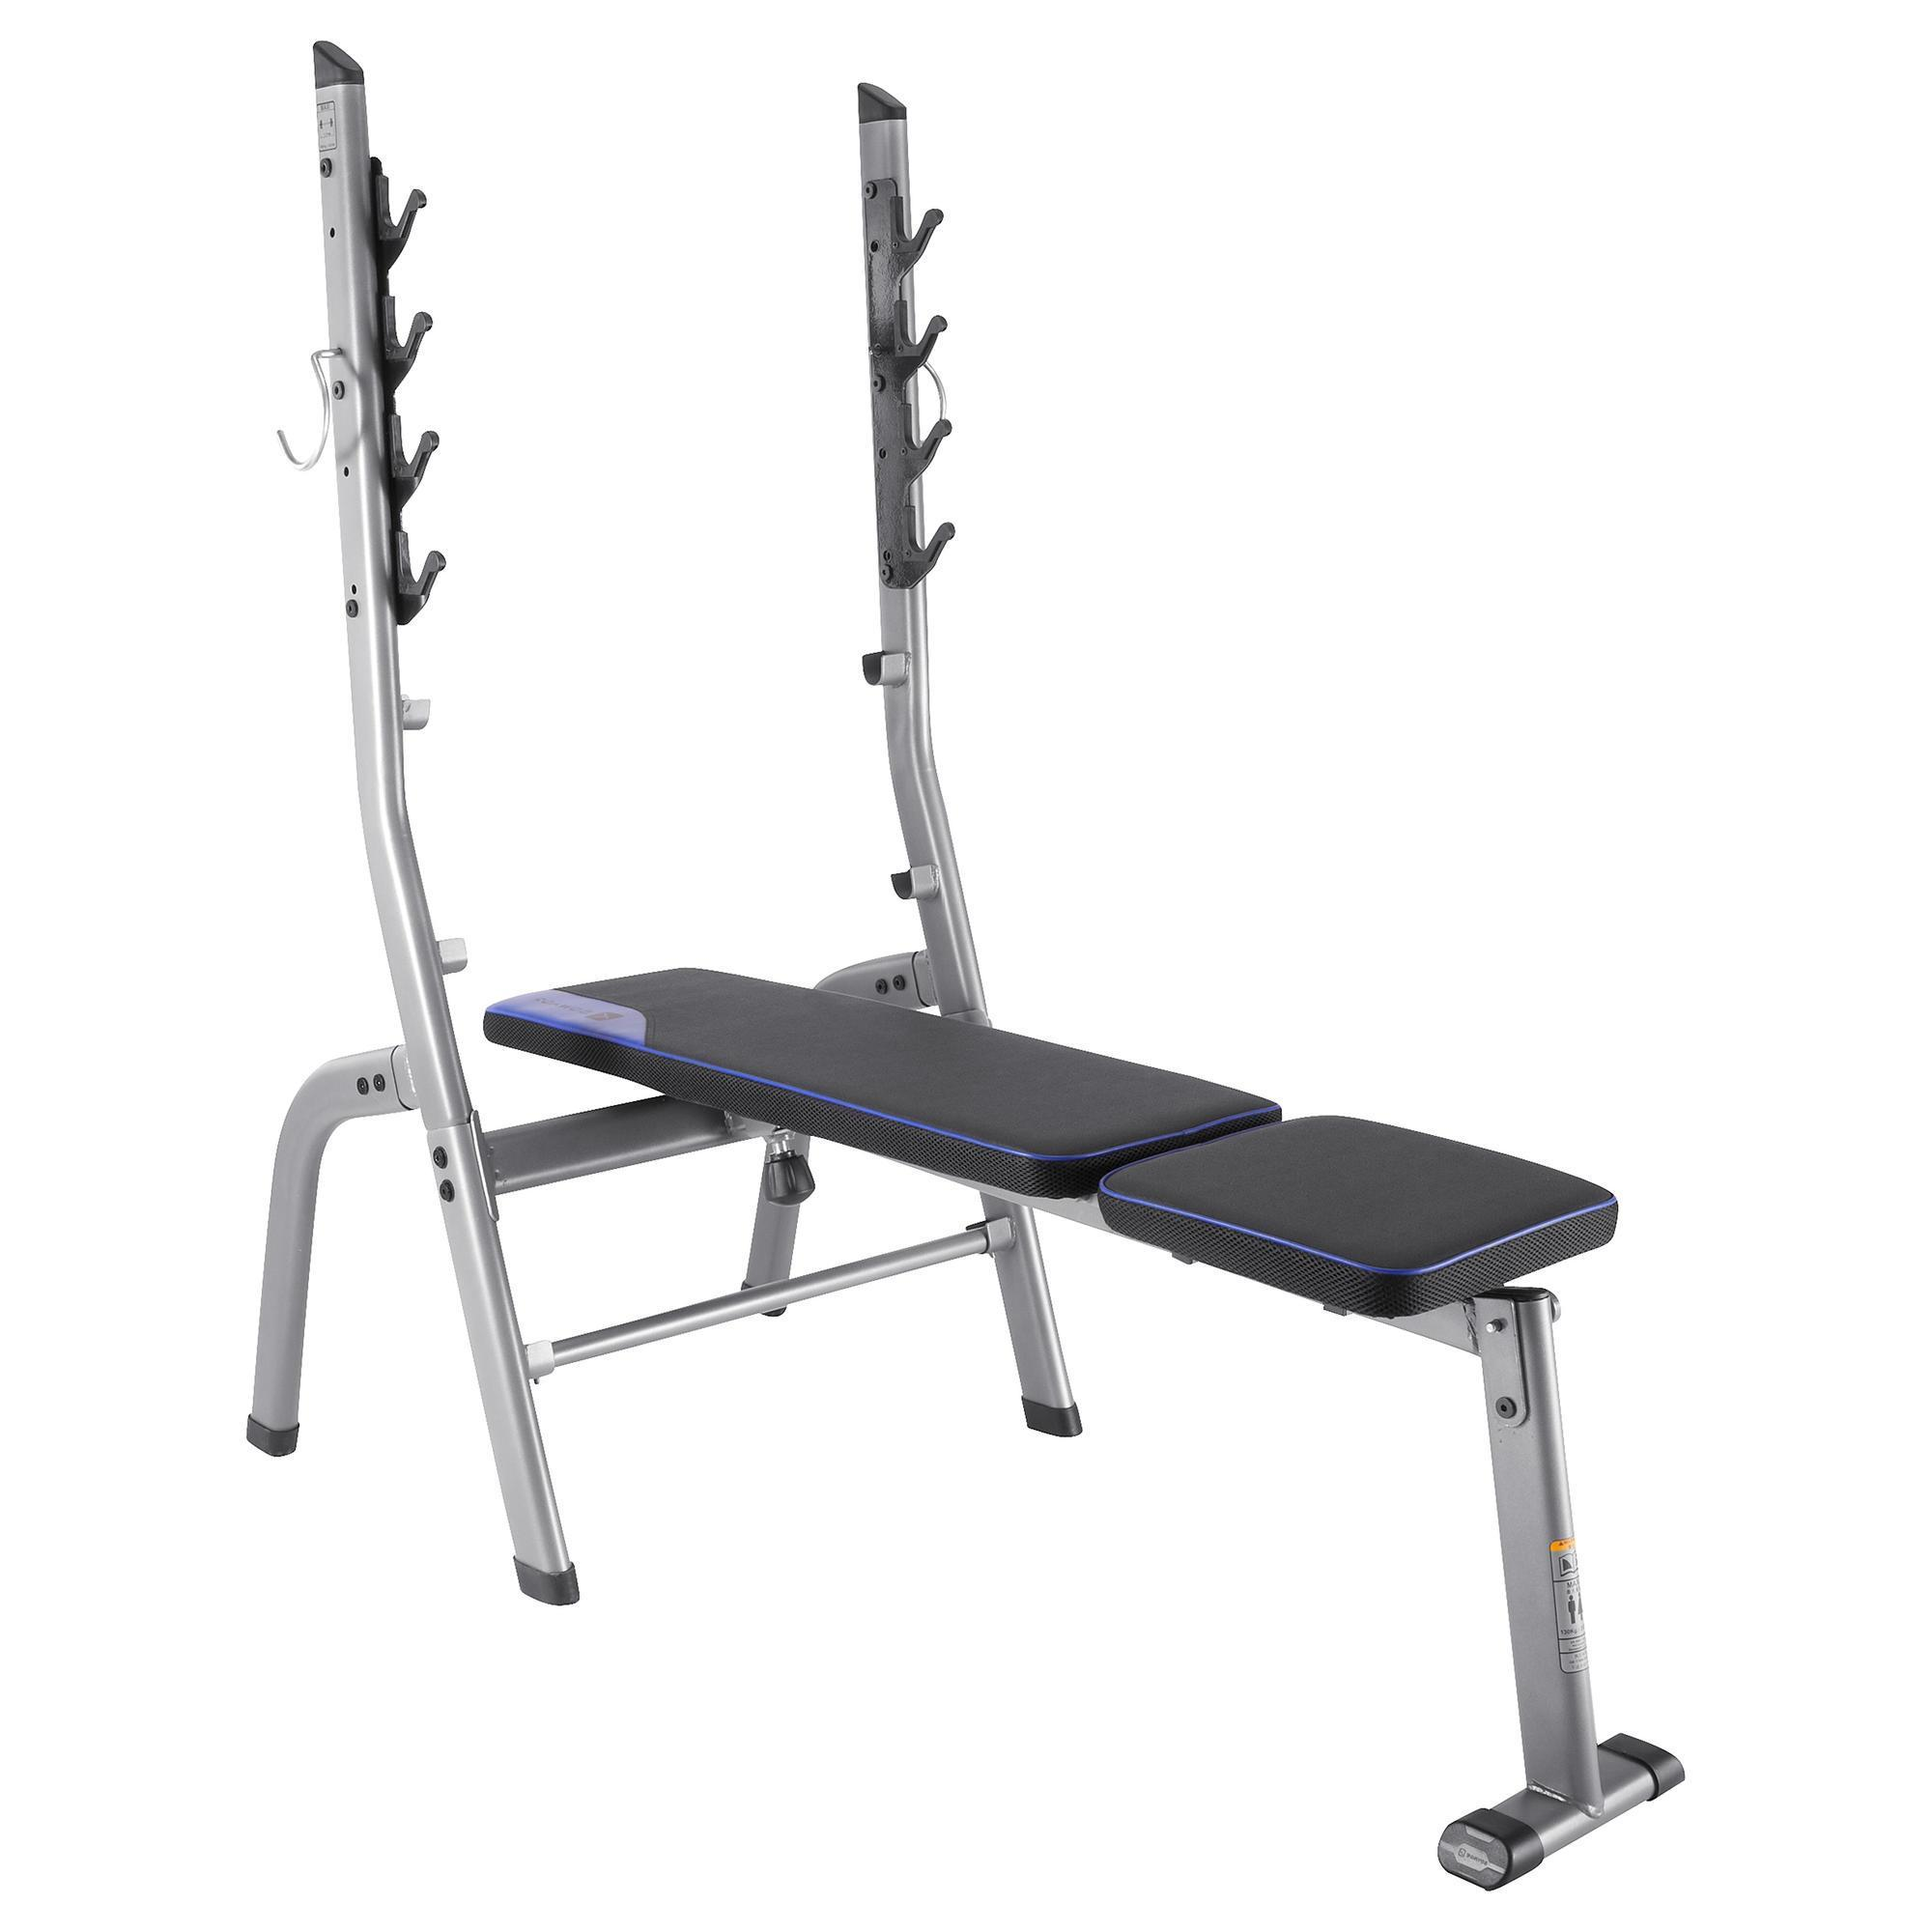 banc de musculation a decathlon